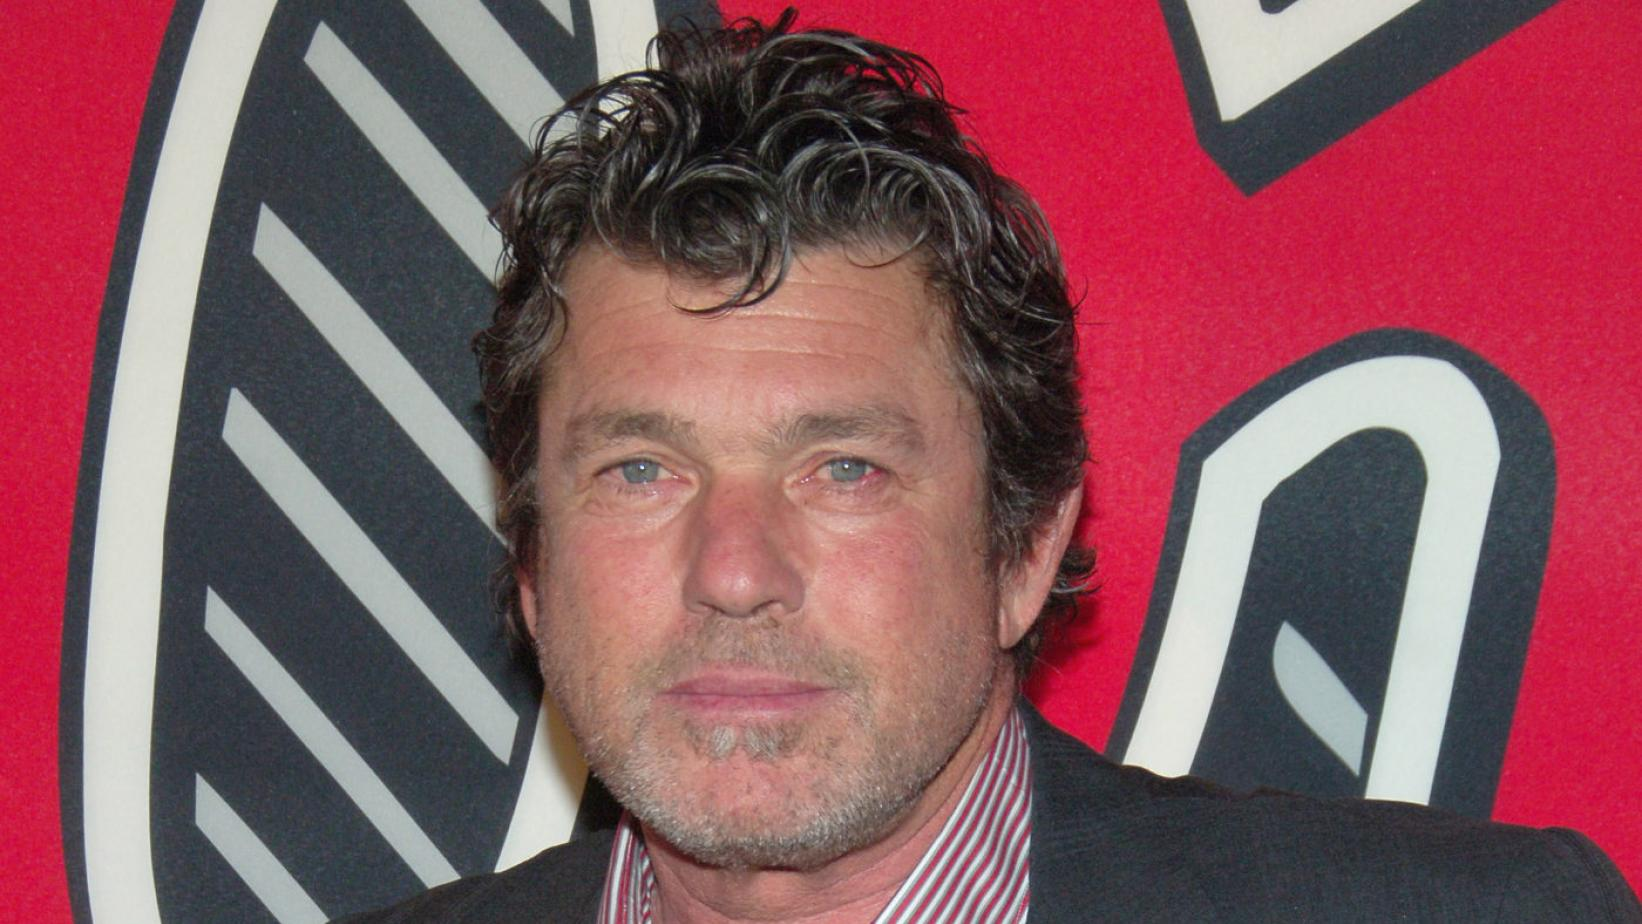 Jann Wenner photographed in 2006